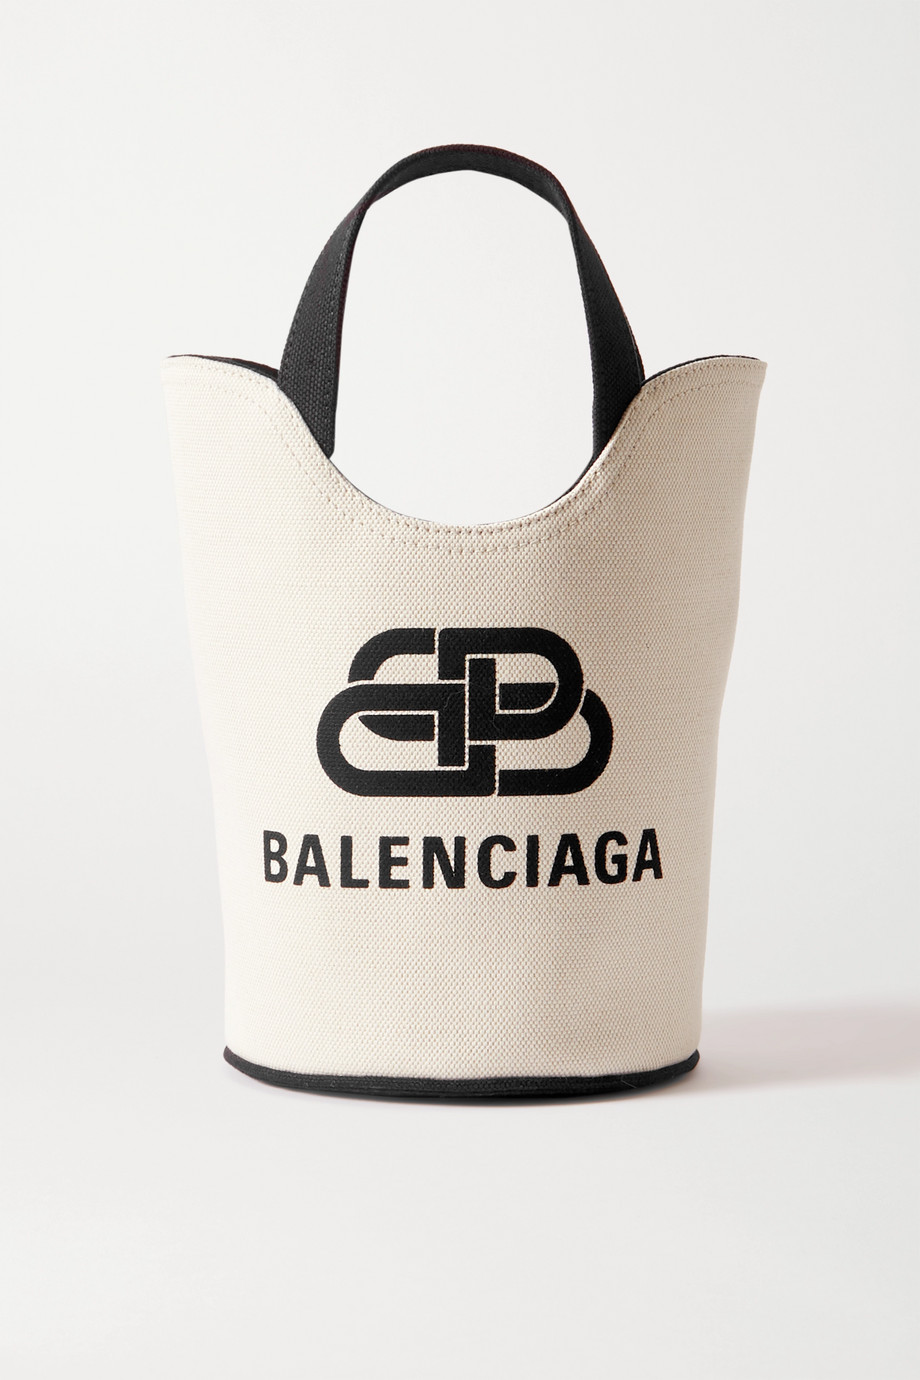 Balenciaga Wave XS leather-trimmed printed cotton-canvas tote